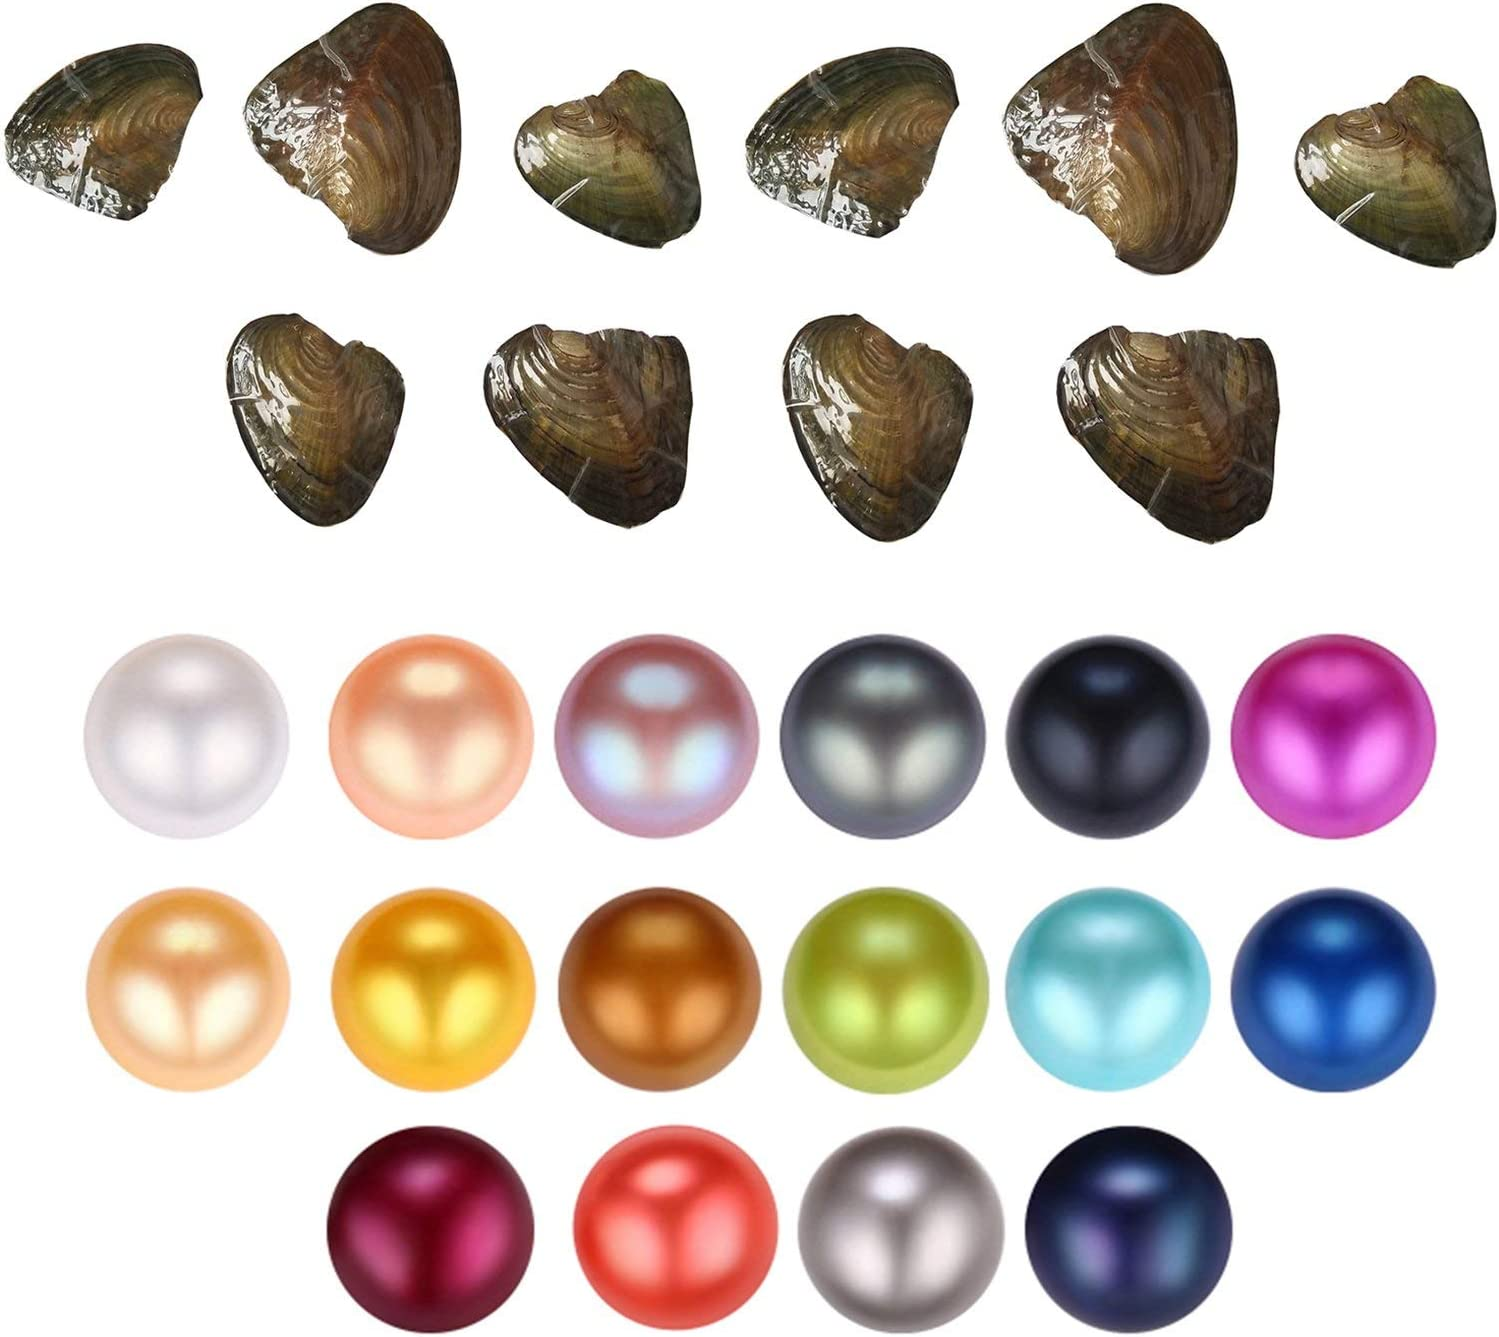 HENGSHENG online All items in the store shop 10 Pieces Freshwater Cultured Oysters Pearl with Singl